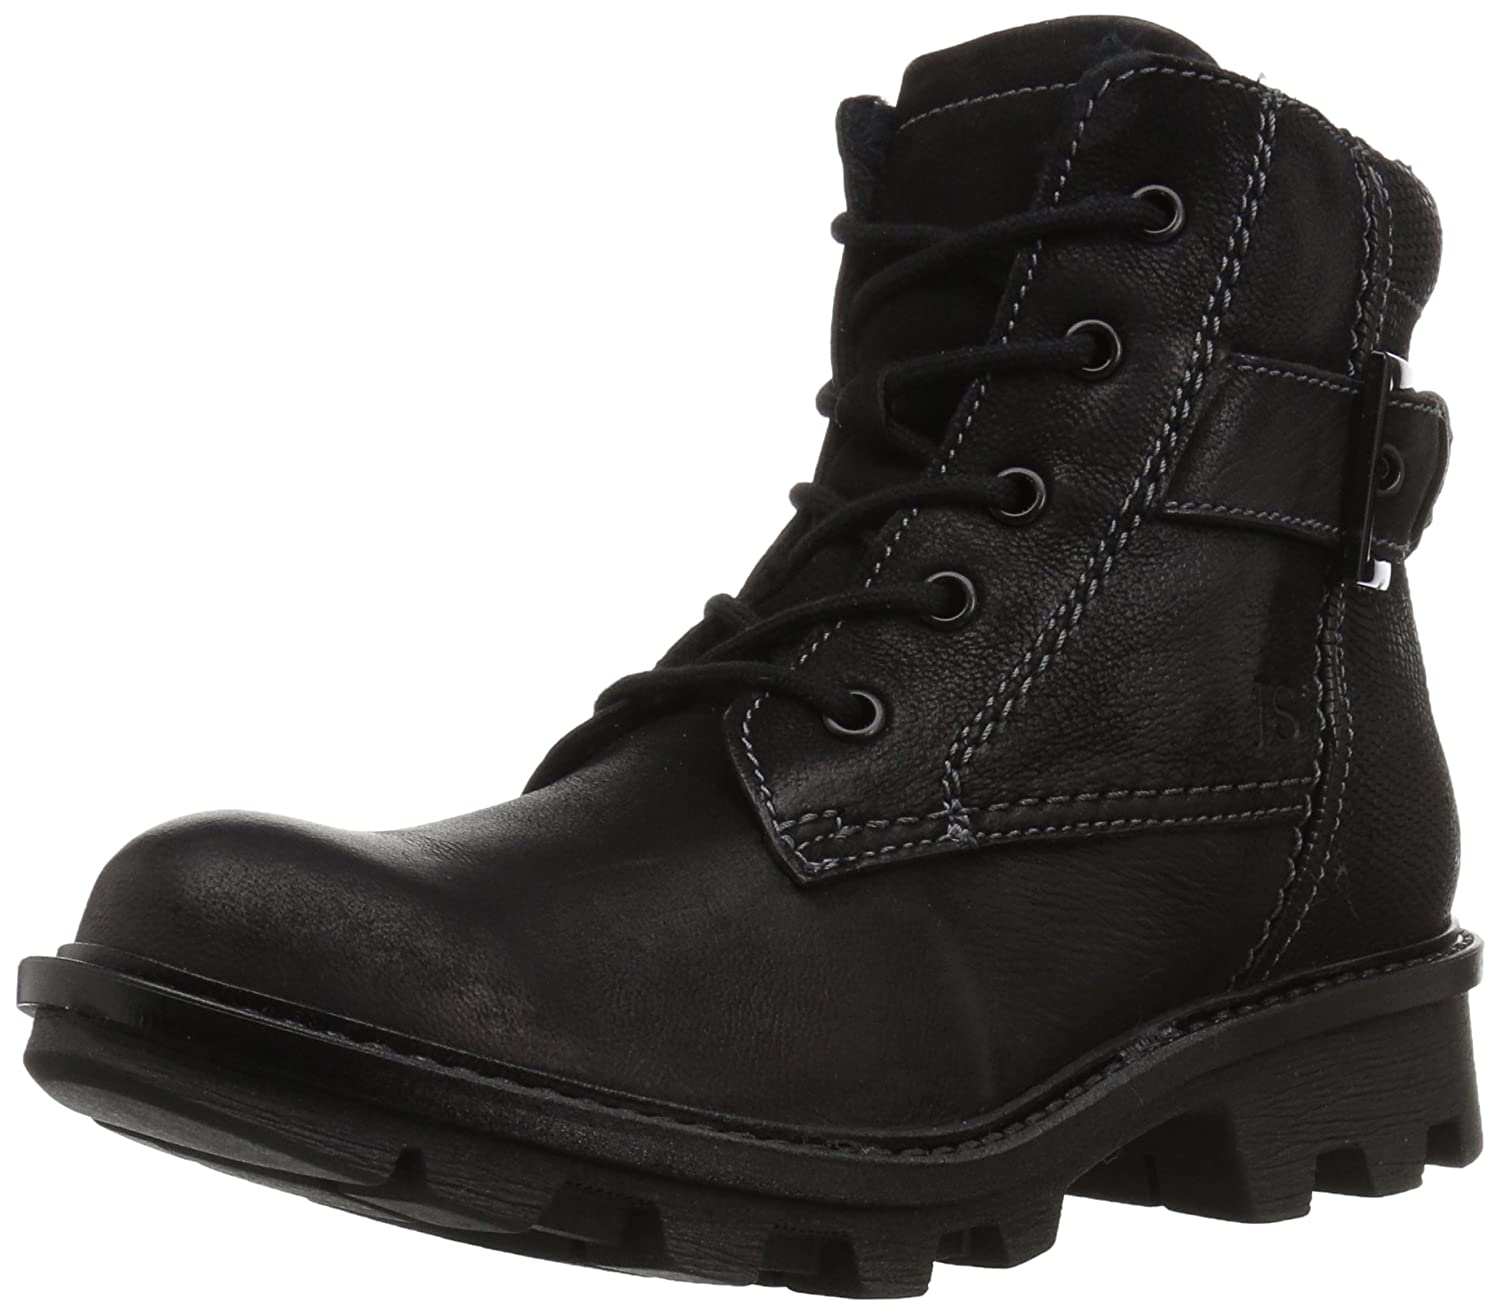 Josef Seibel Women's Marylin 03 Combat Boot B072PCRSZ1 37 EU/6-6.5 M US|Black